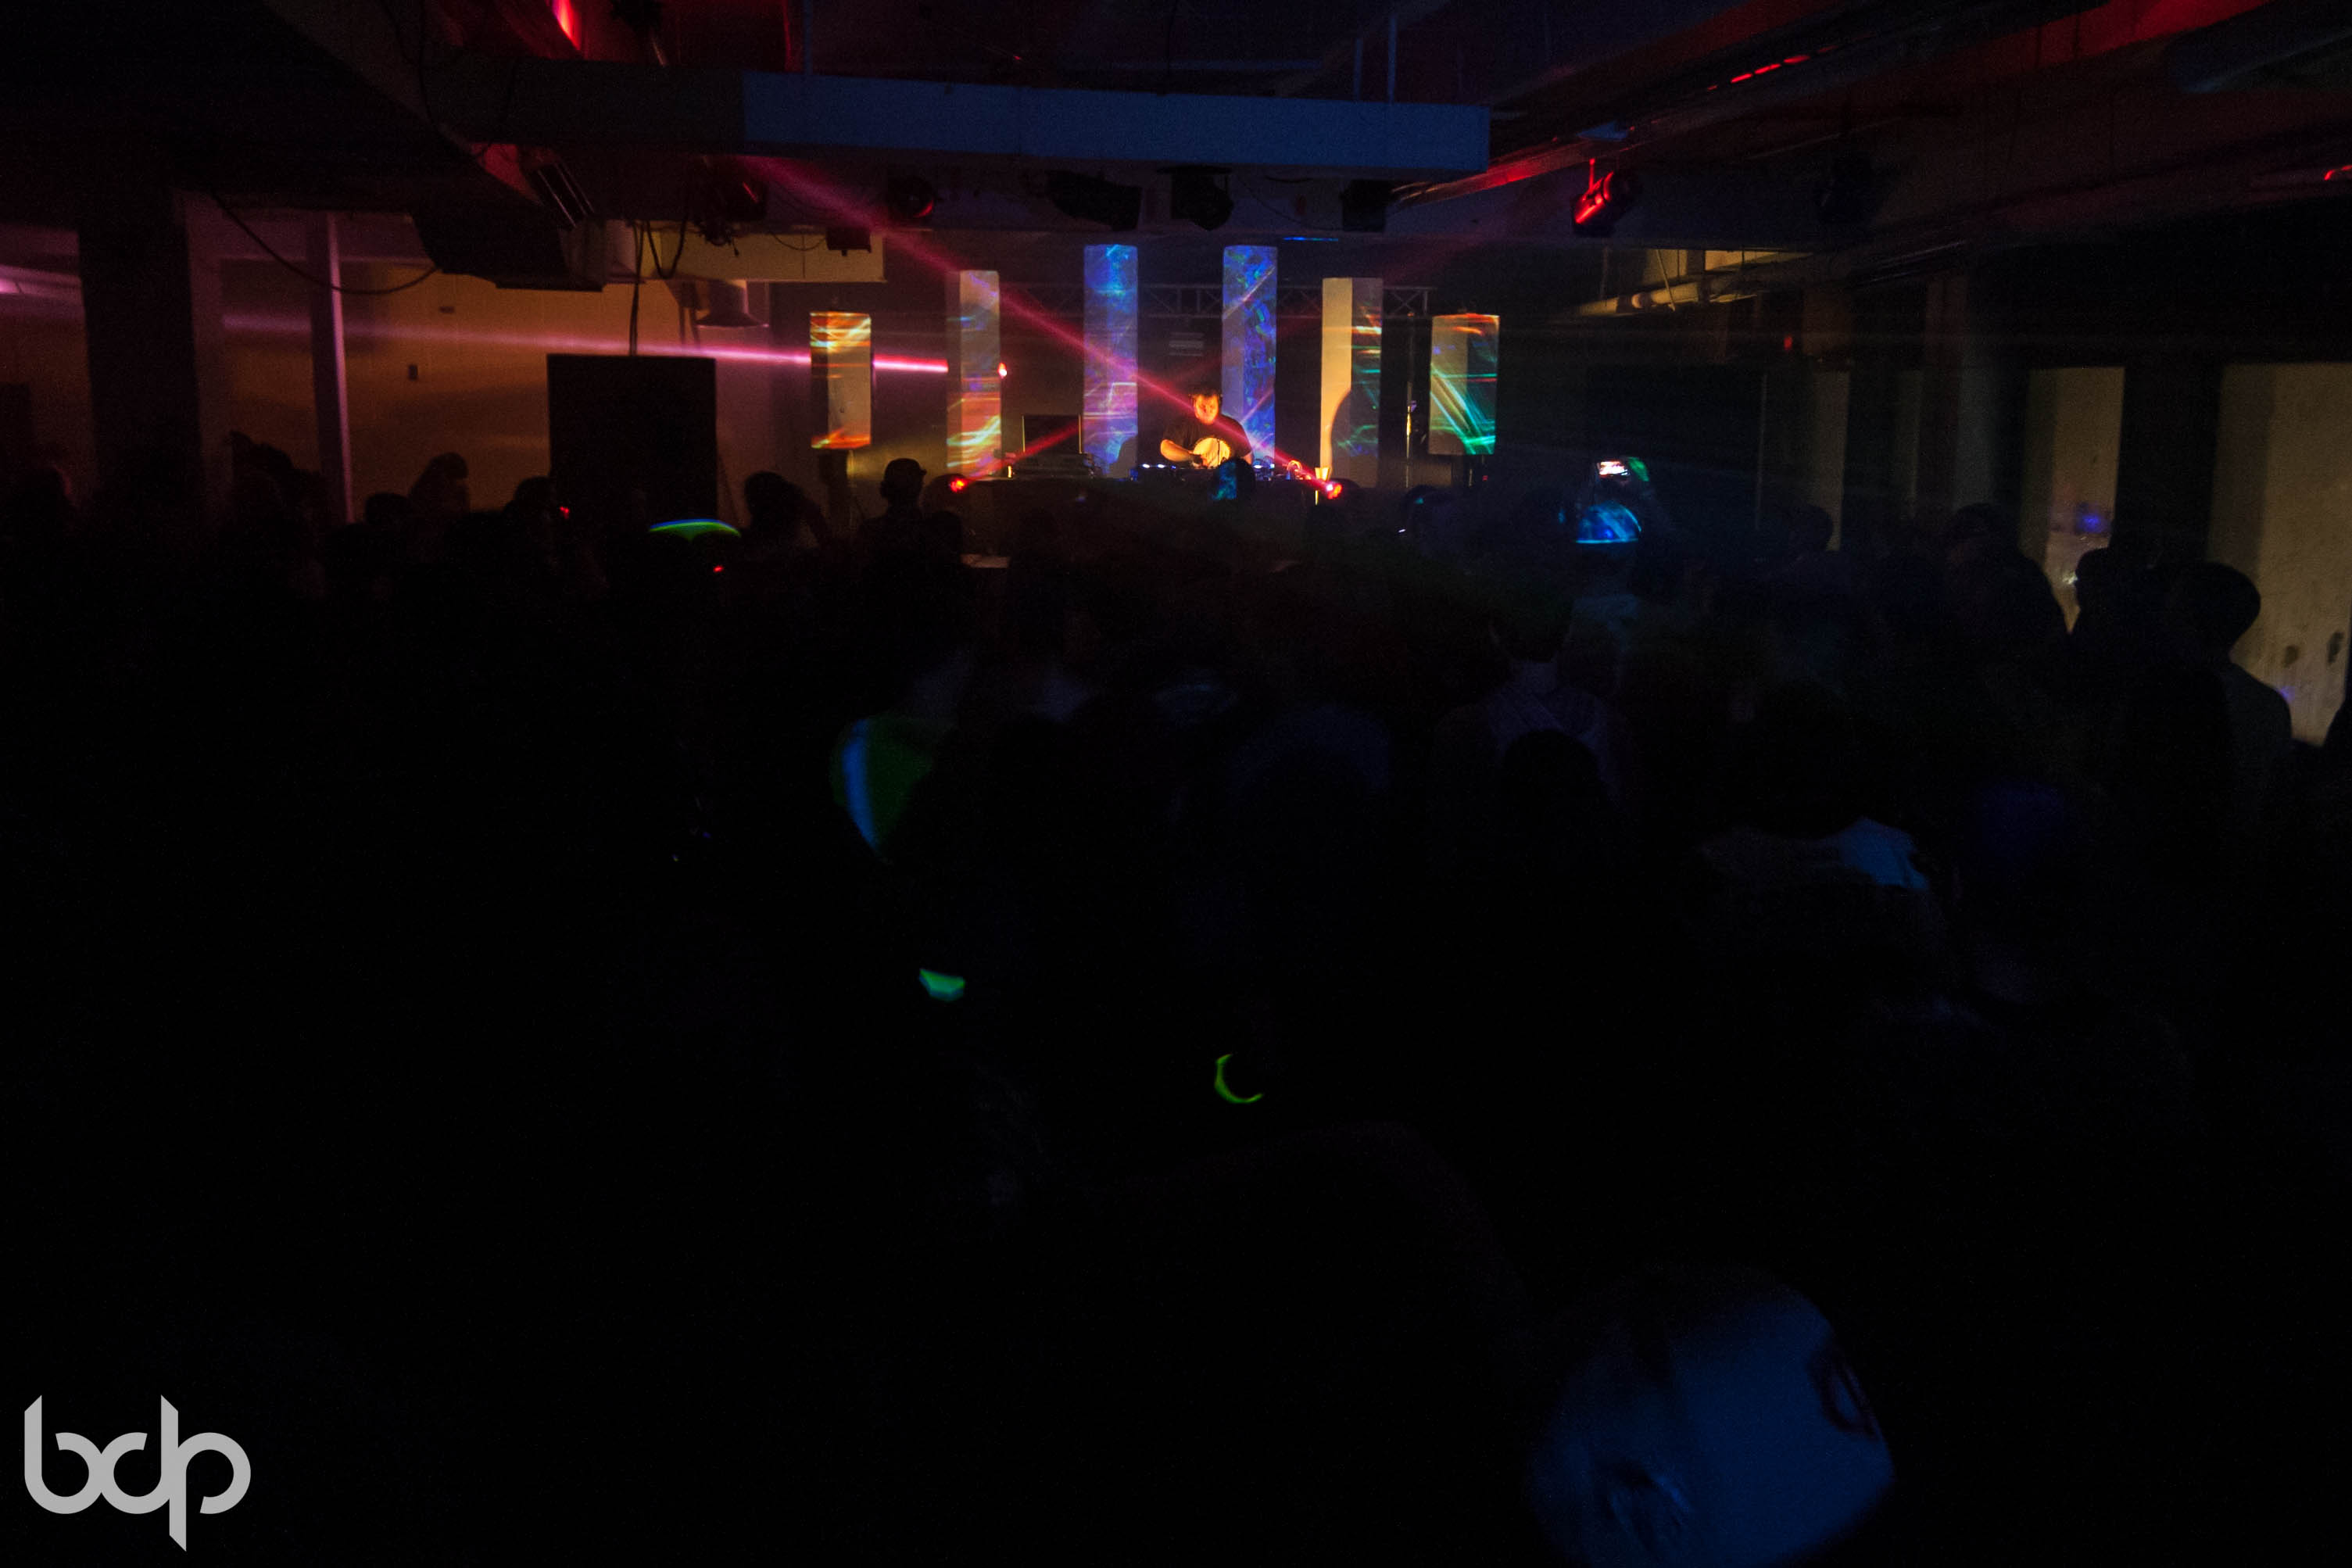 Bass Riot ft. DjAhsta, Cyberoptics, Jphelps at The Loft 122113 BDP-29.jpg